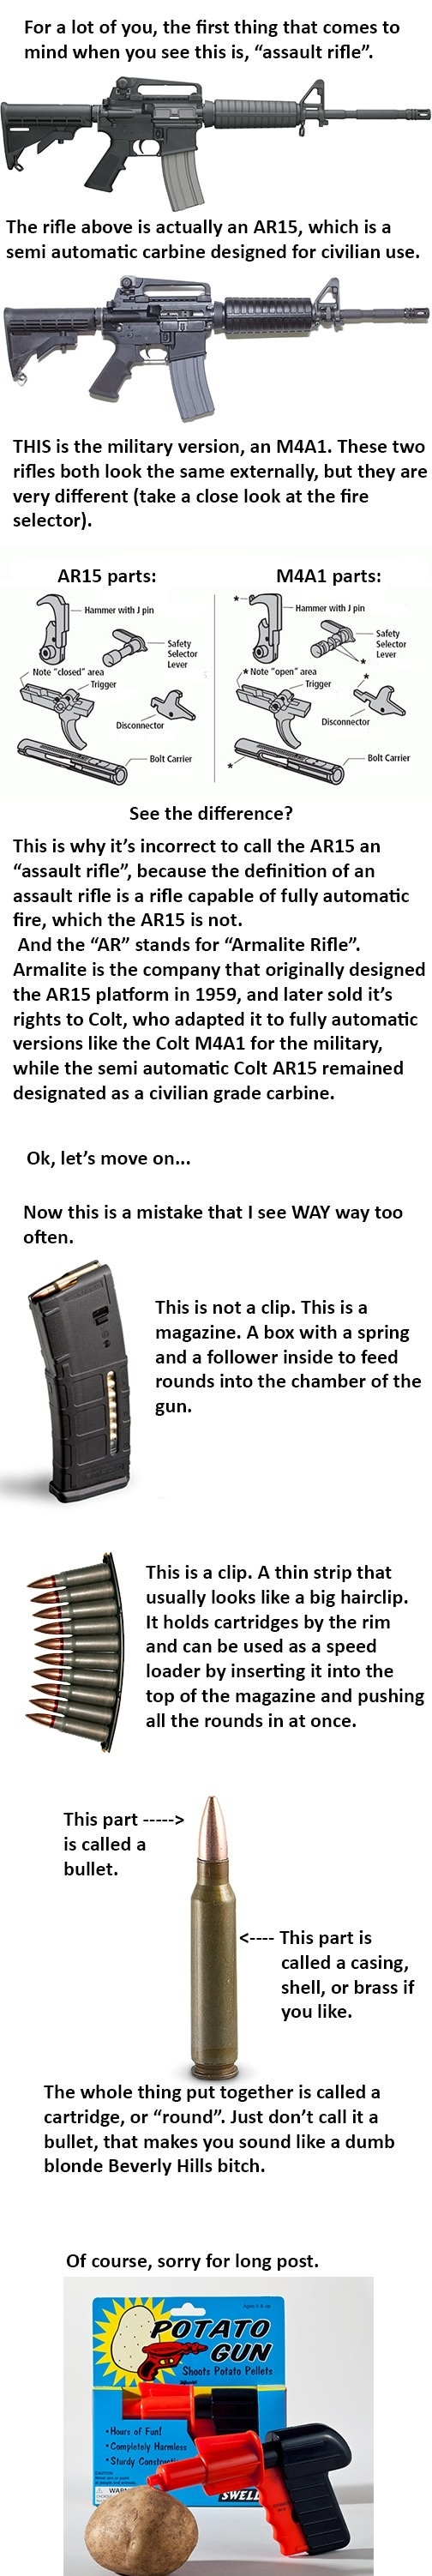 Firearms terminology